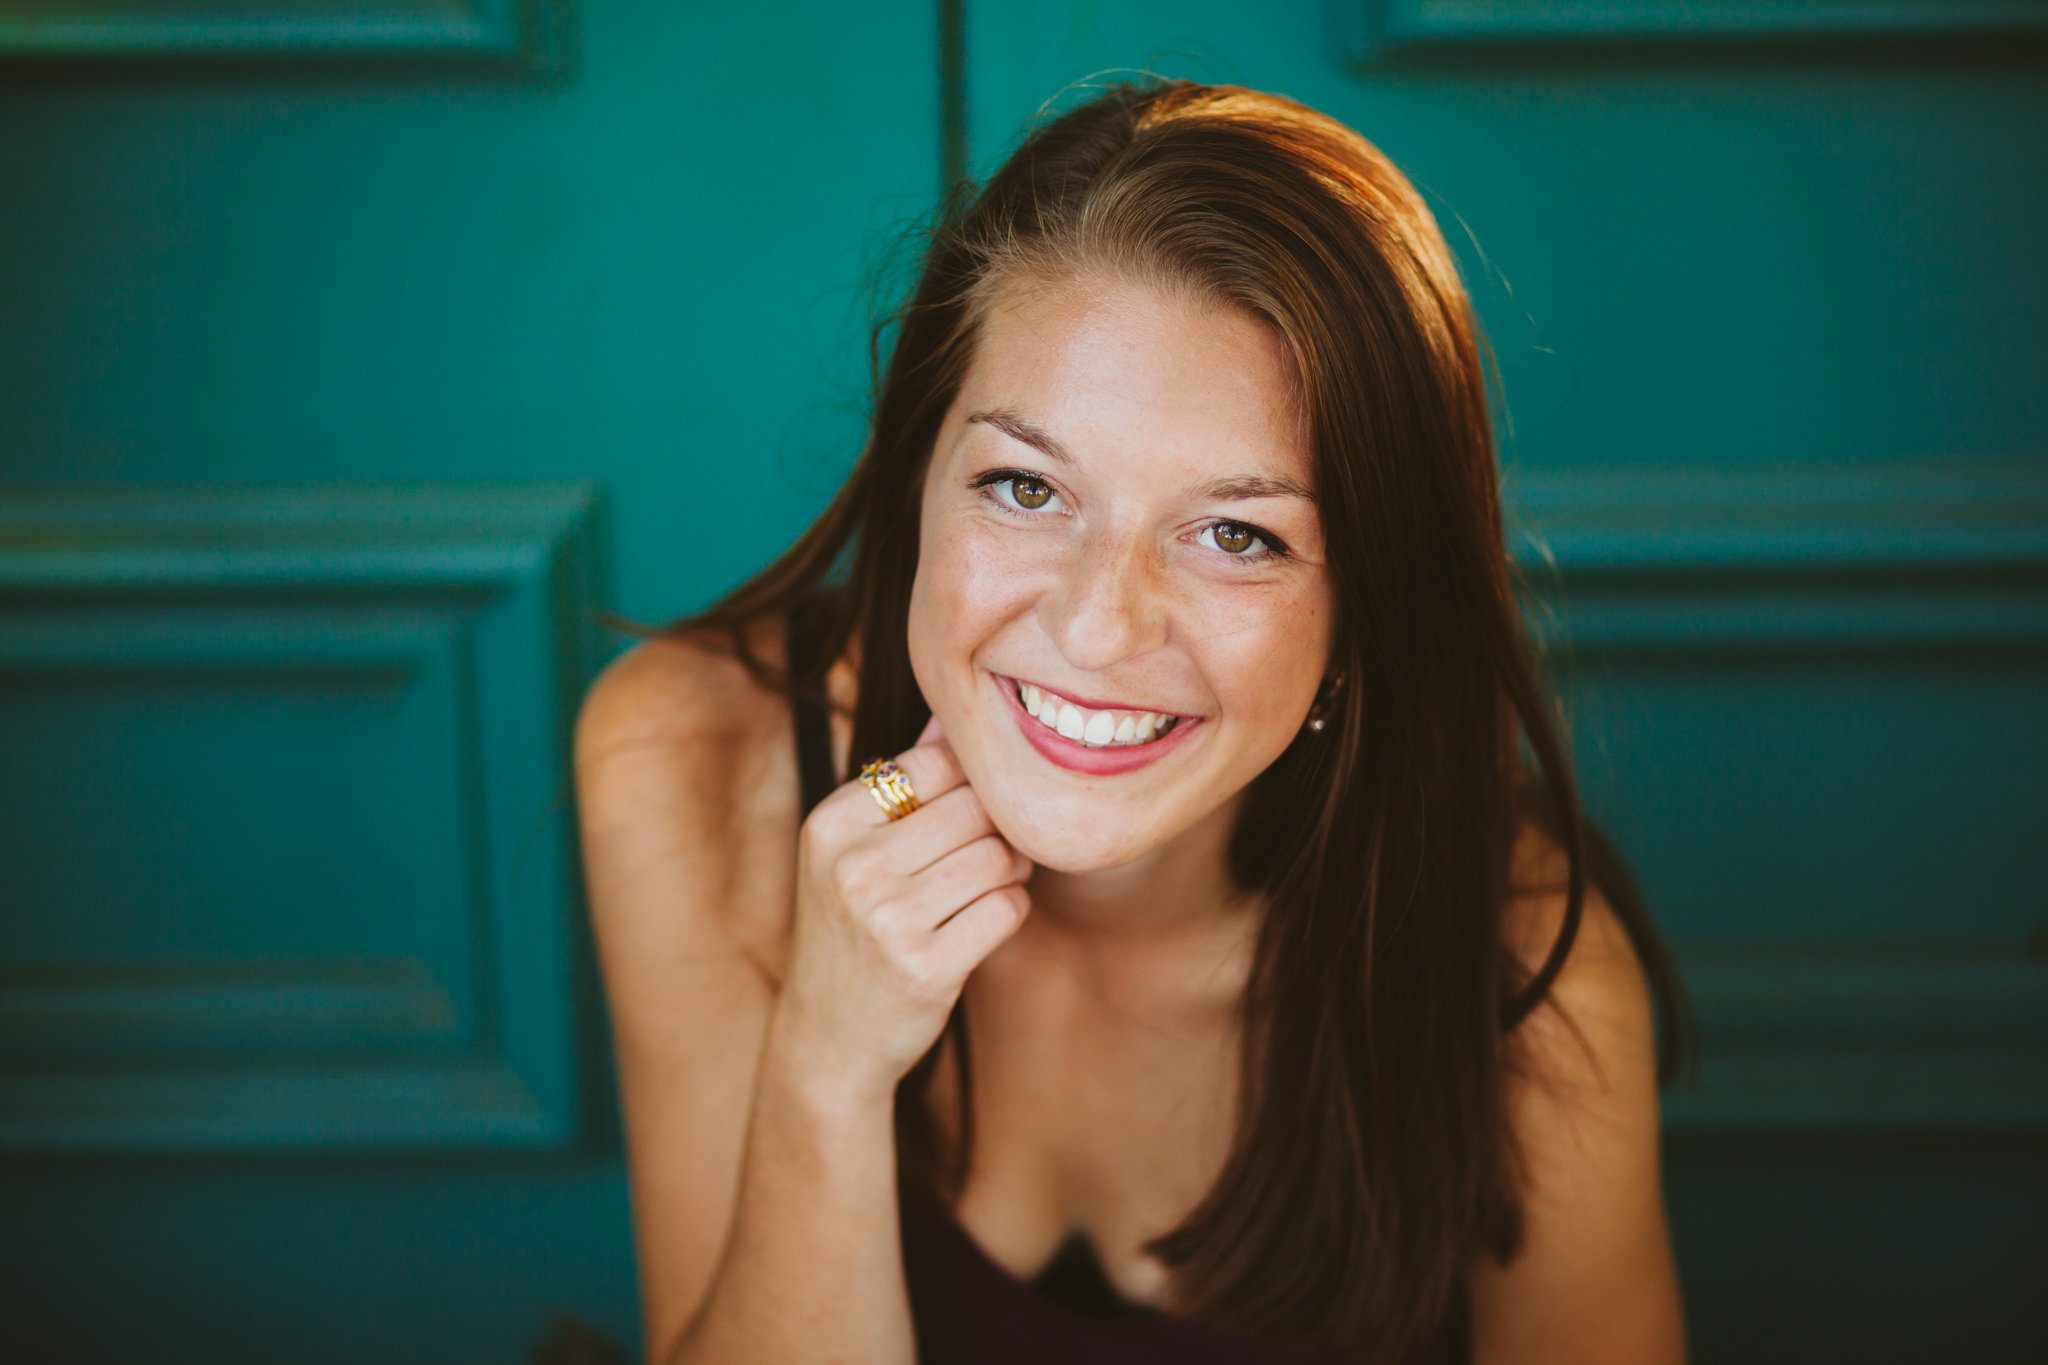 kyra - c/o 2017 - She is so fun, so nice, so talented! I would totally recommend her to anyone.